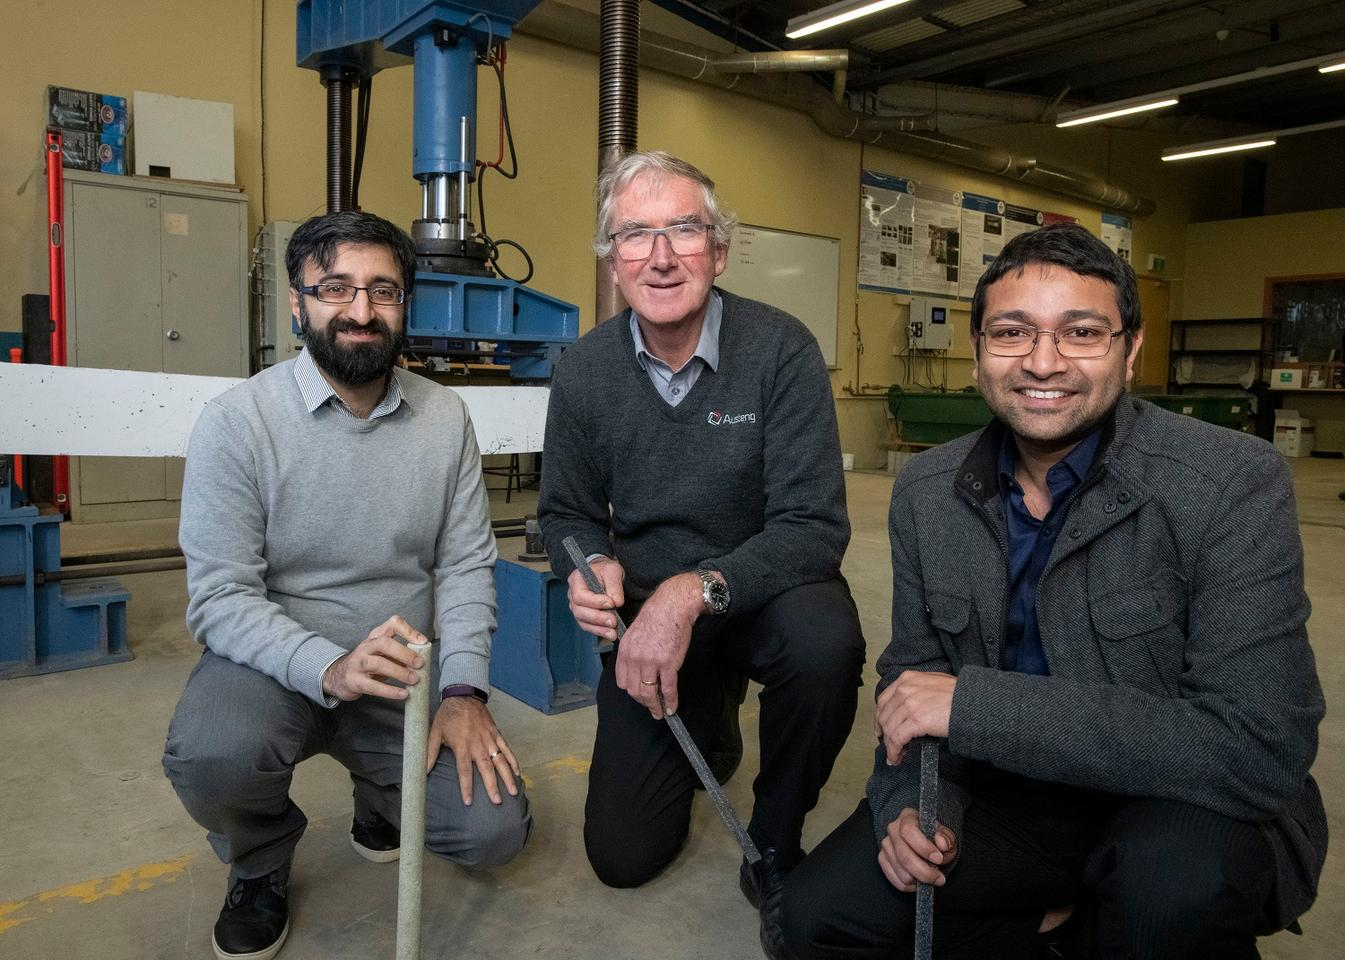 Deakin's Dr. Kazem Ghabraie, Austeng Engineering's Ross George and Deakin's Dr. Mahbube Subhani, with samples of the rebar